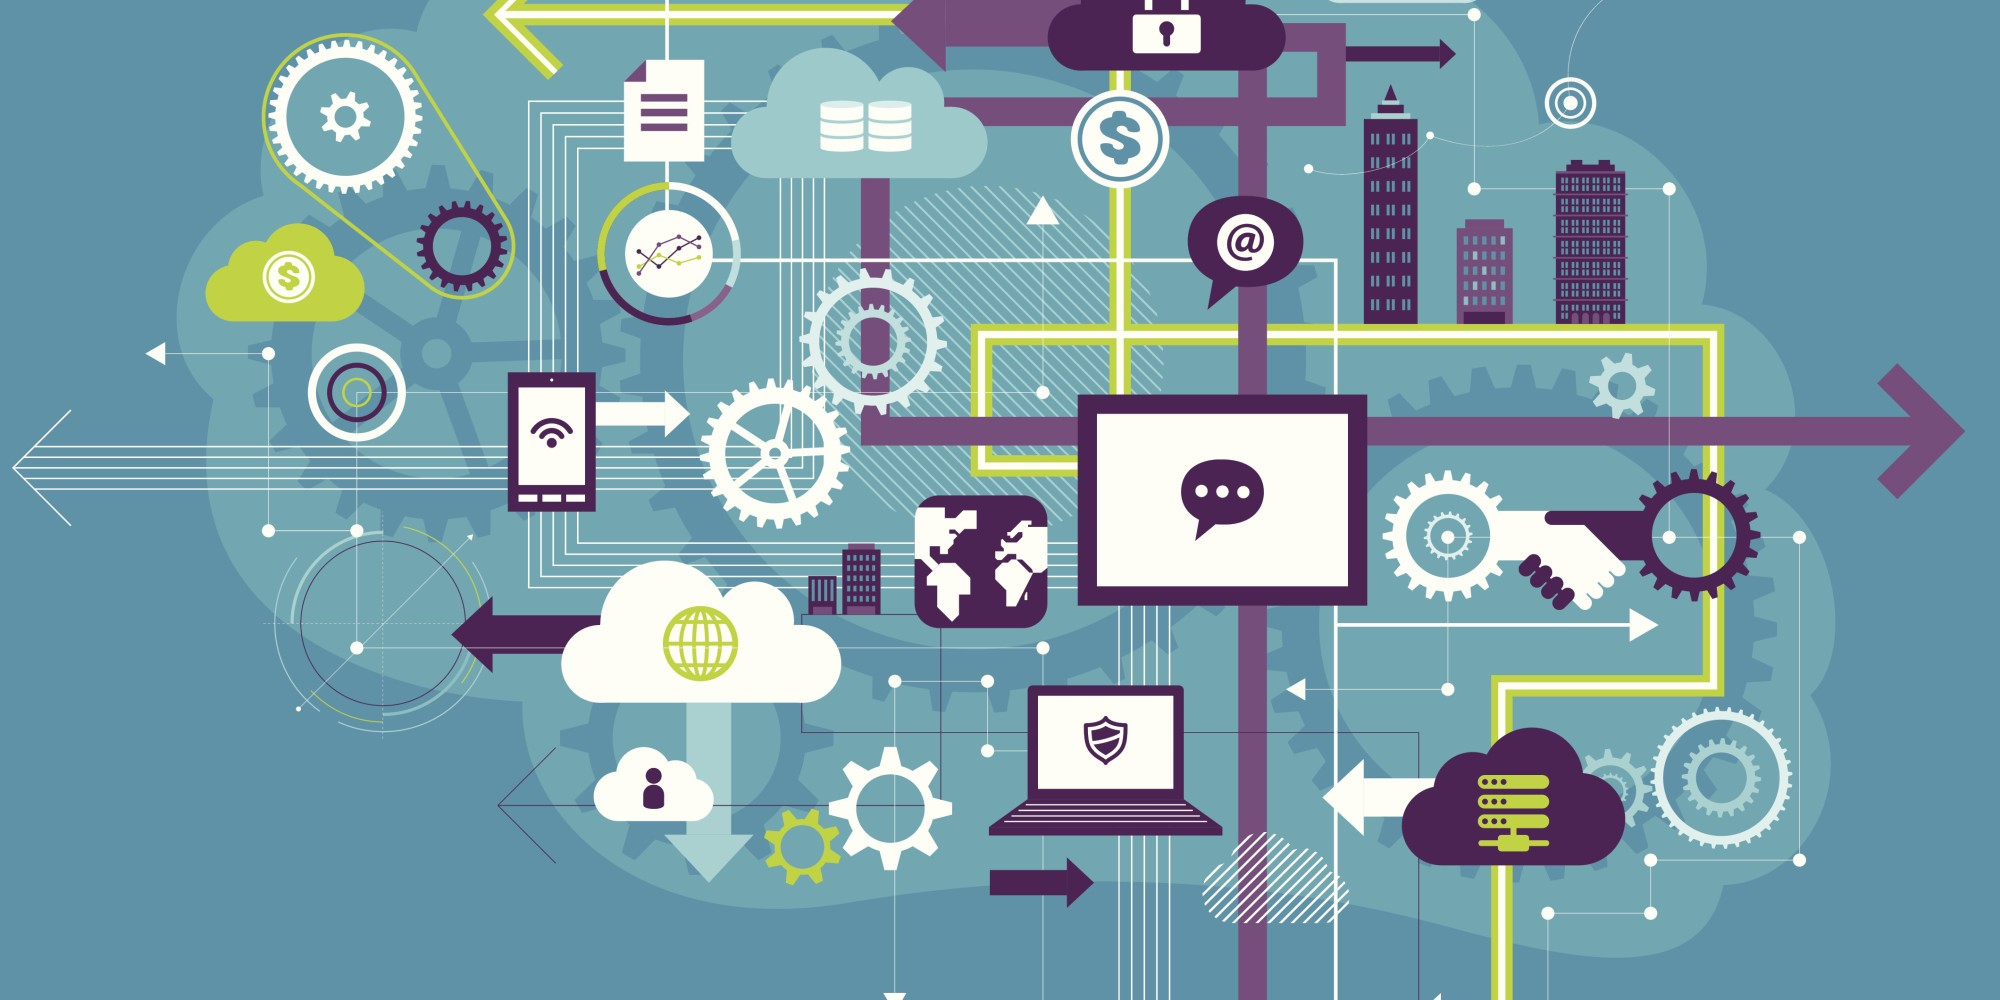 IoT: Our life in public? 2